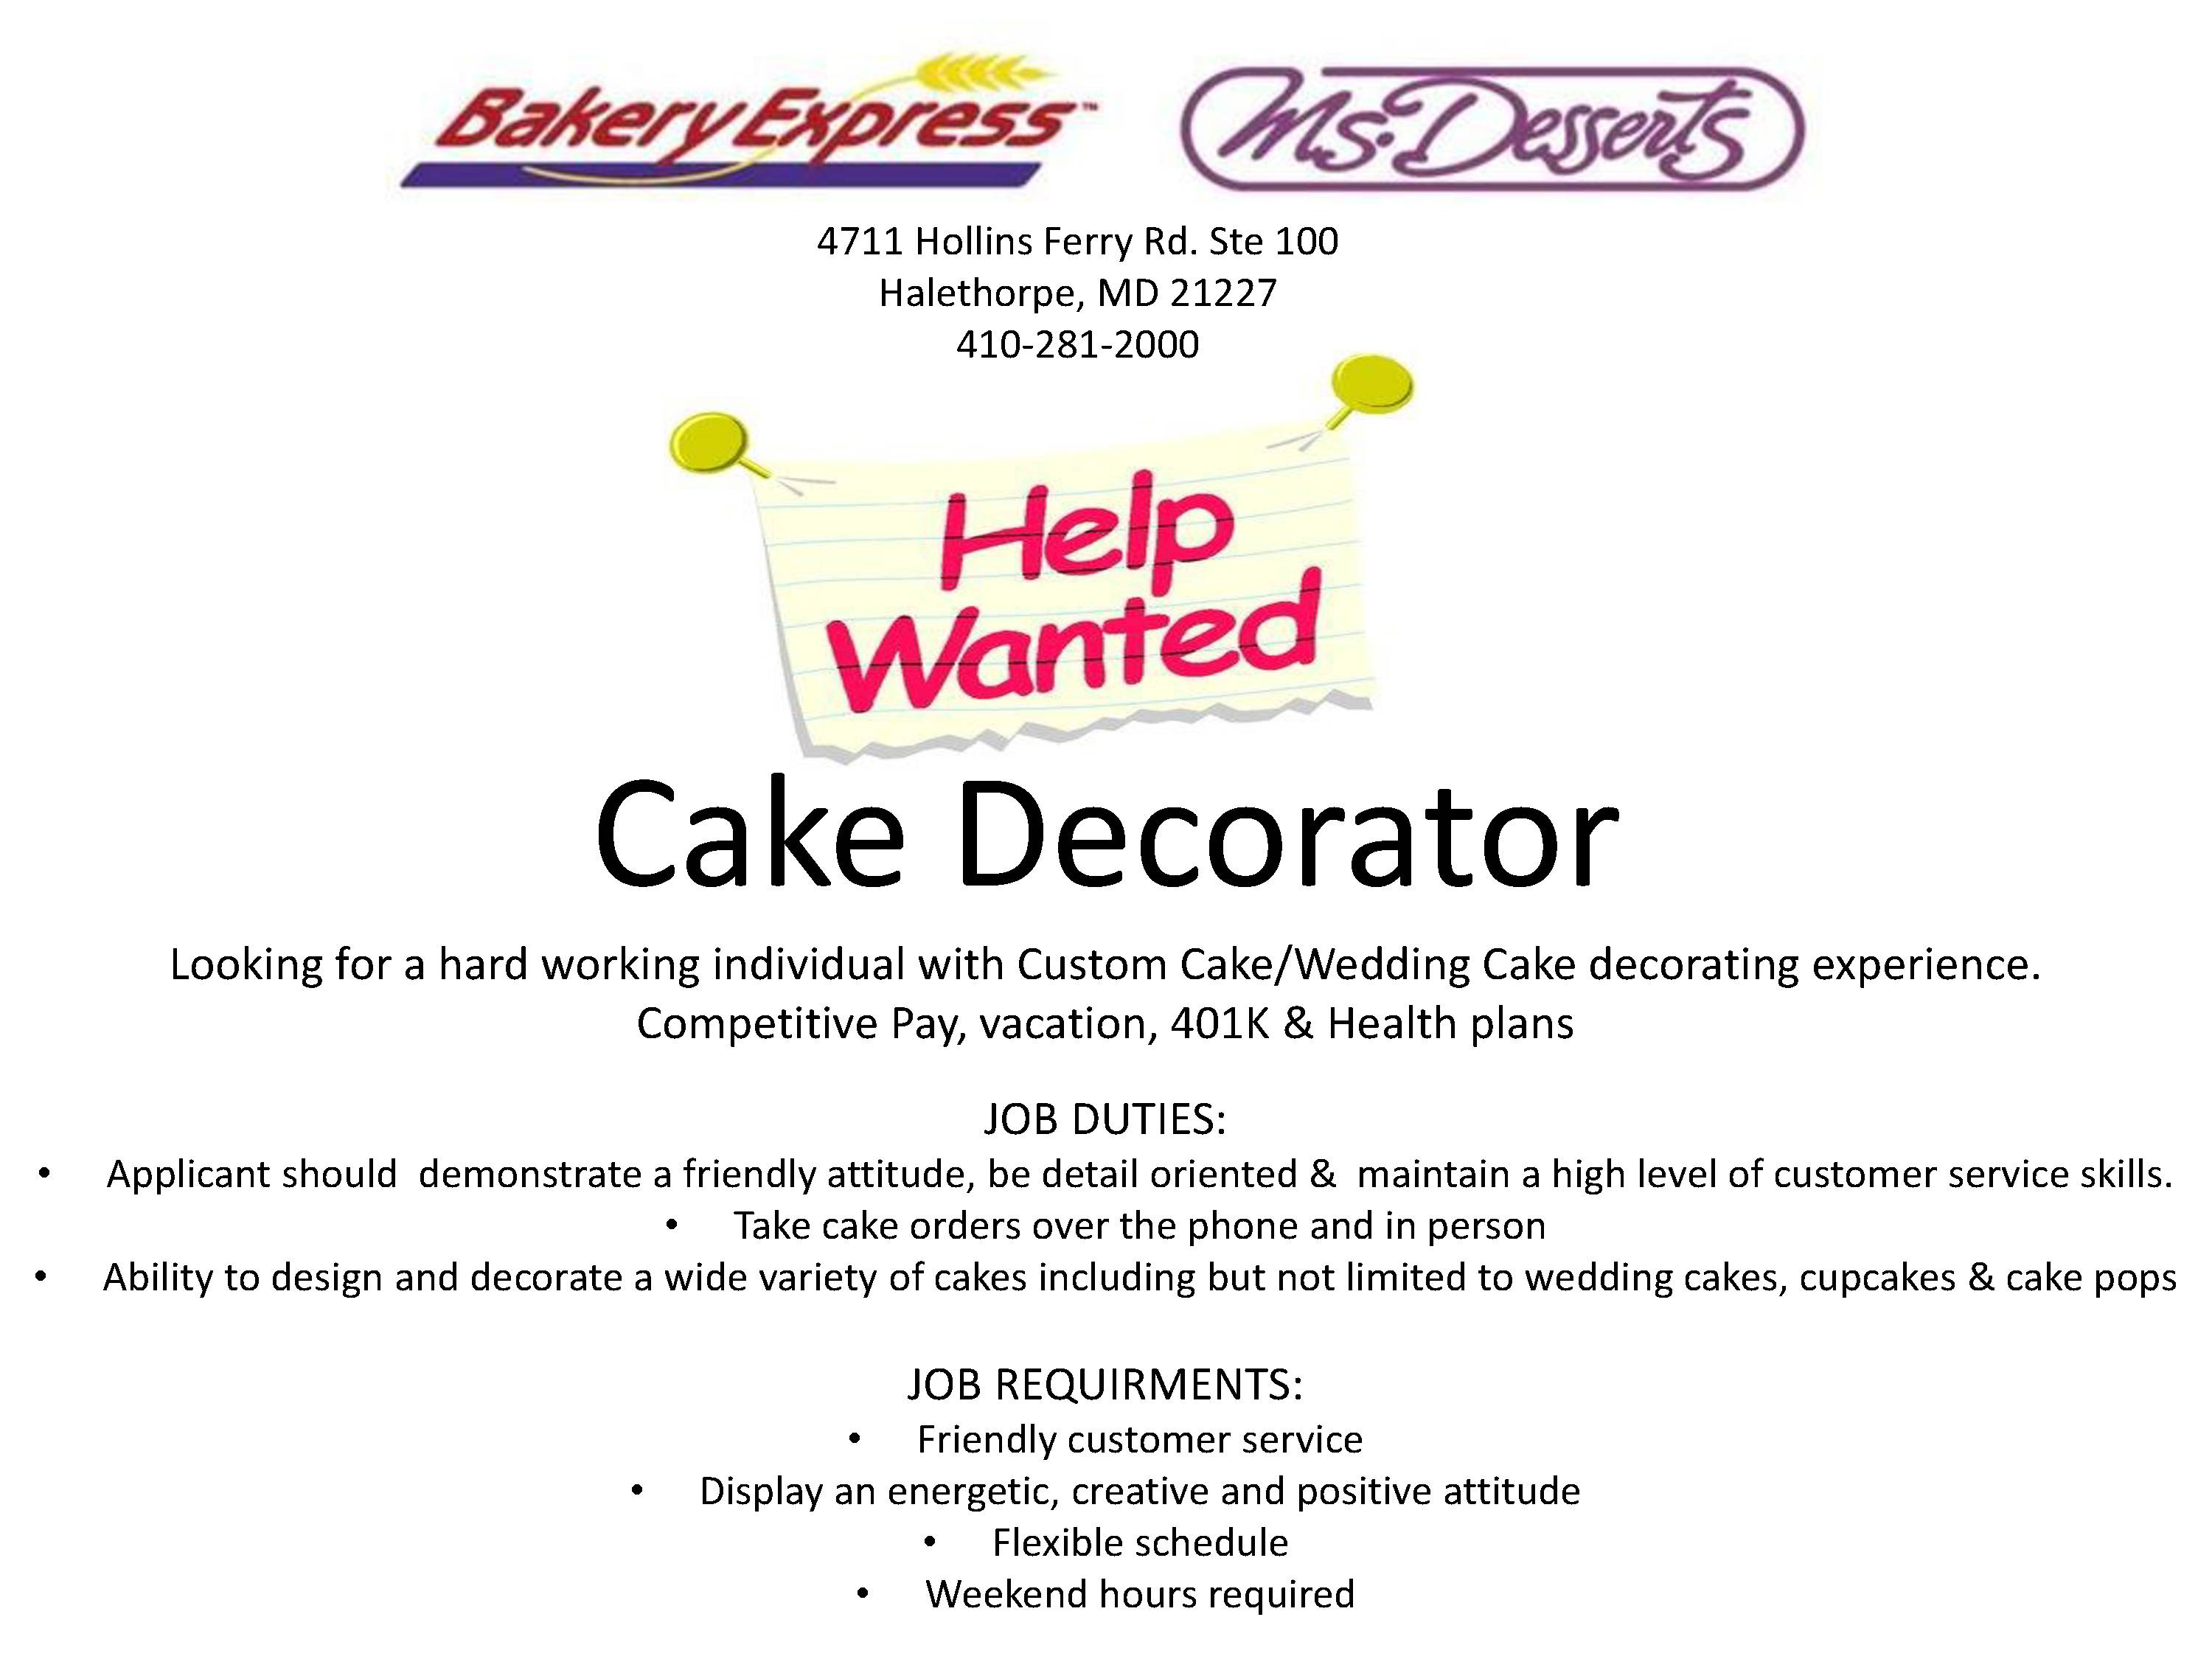 Cake Decorator Job Description Sample : Cake Decorator Job Description List Iron Blog